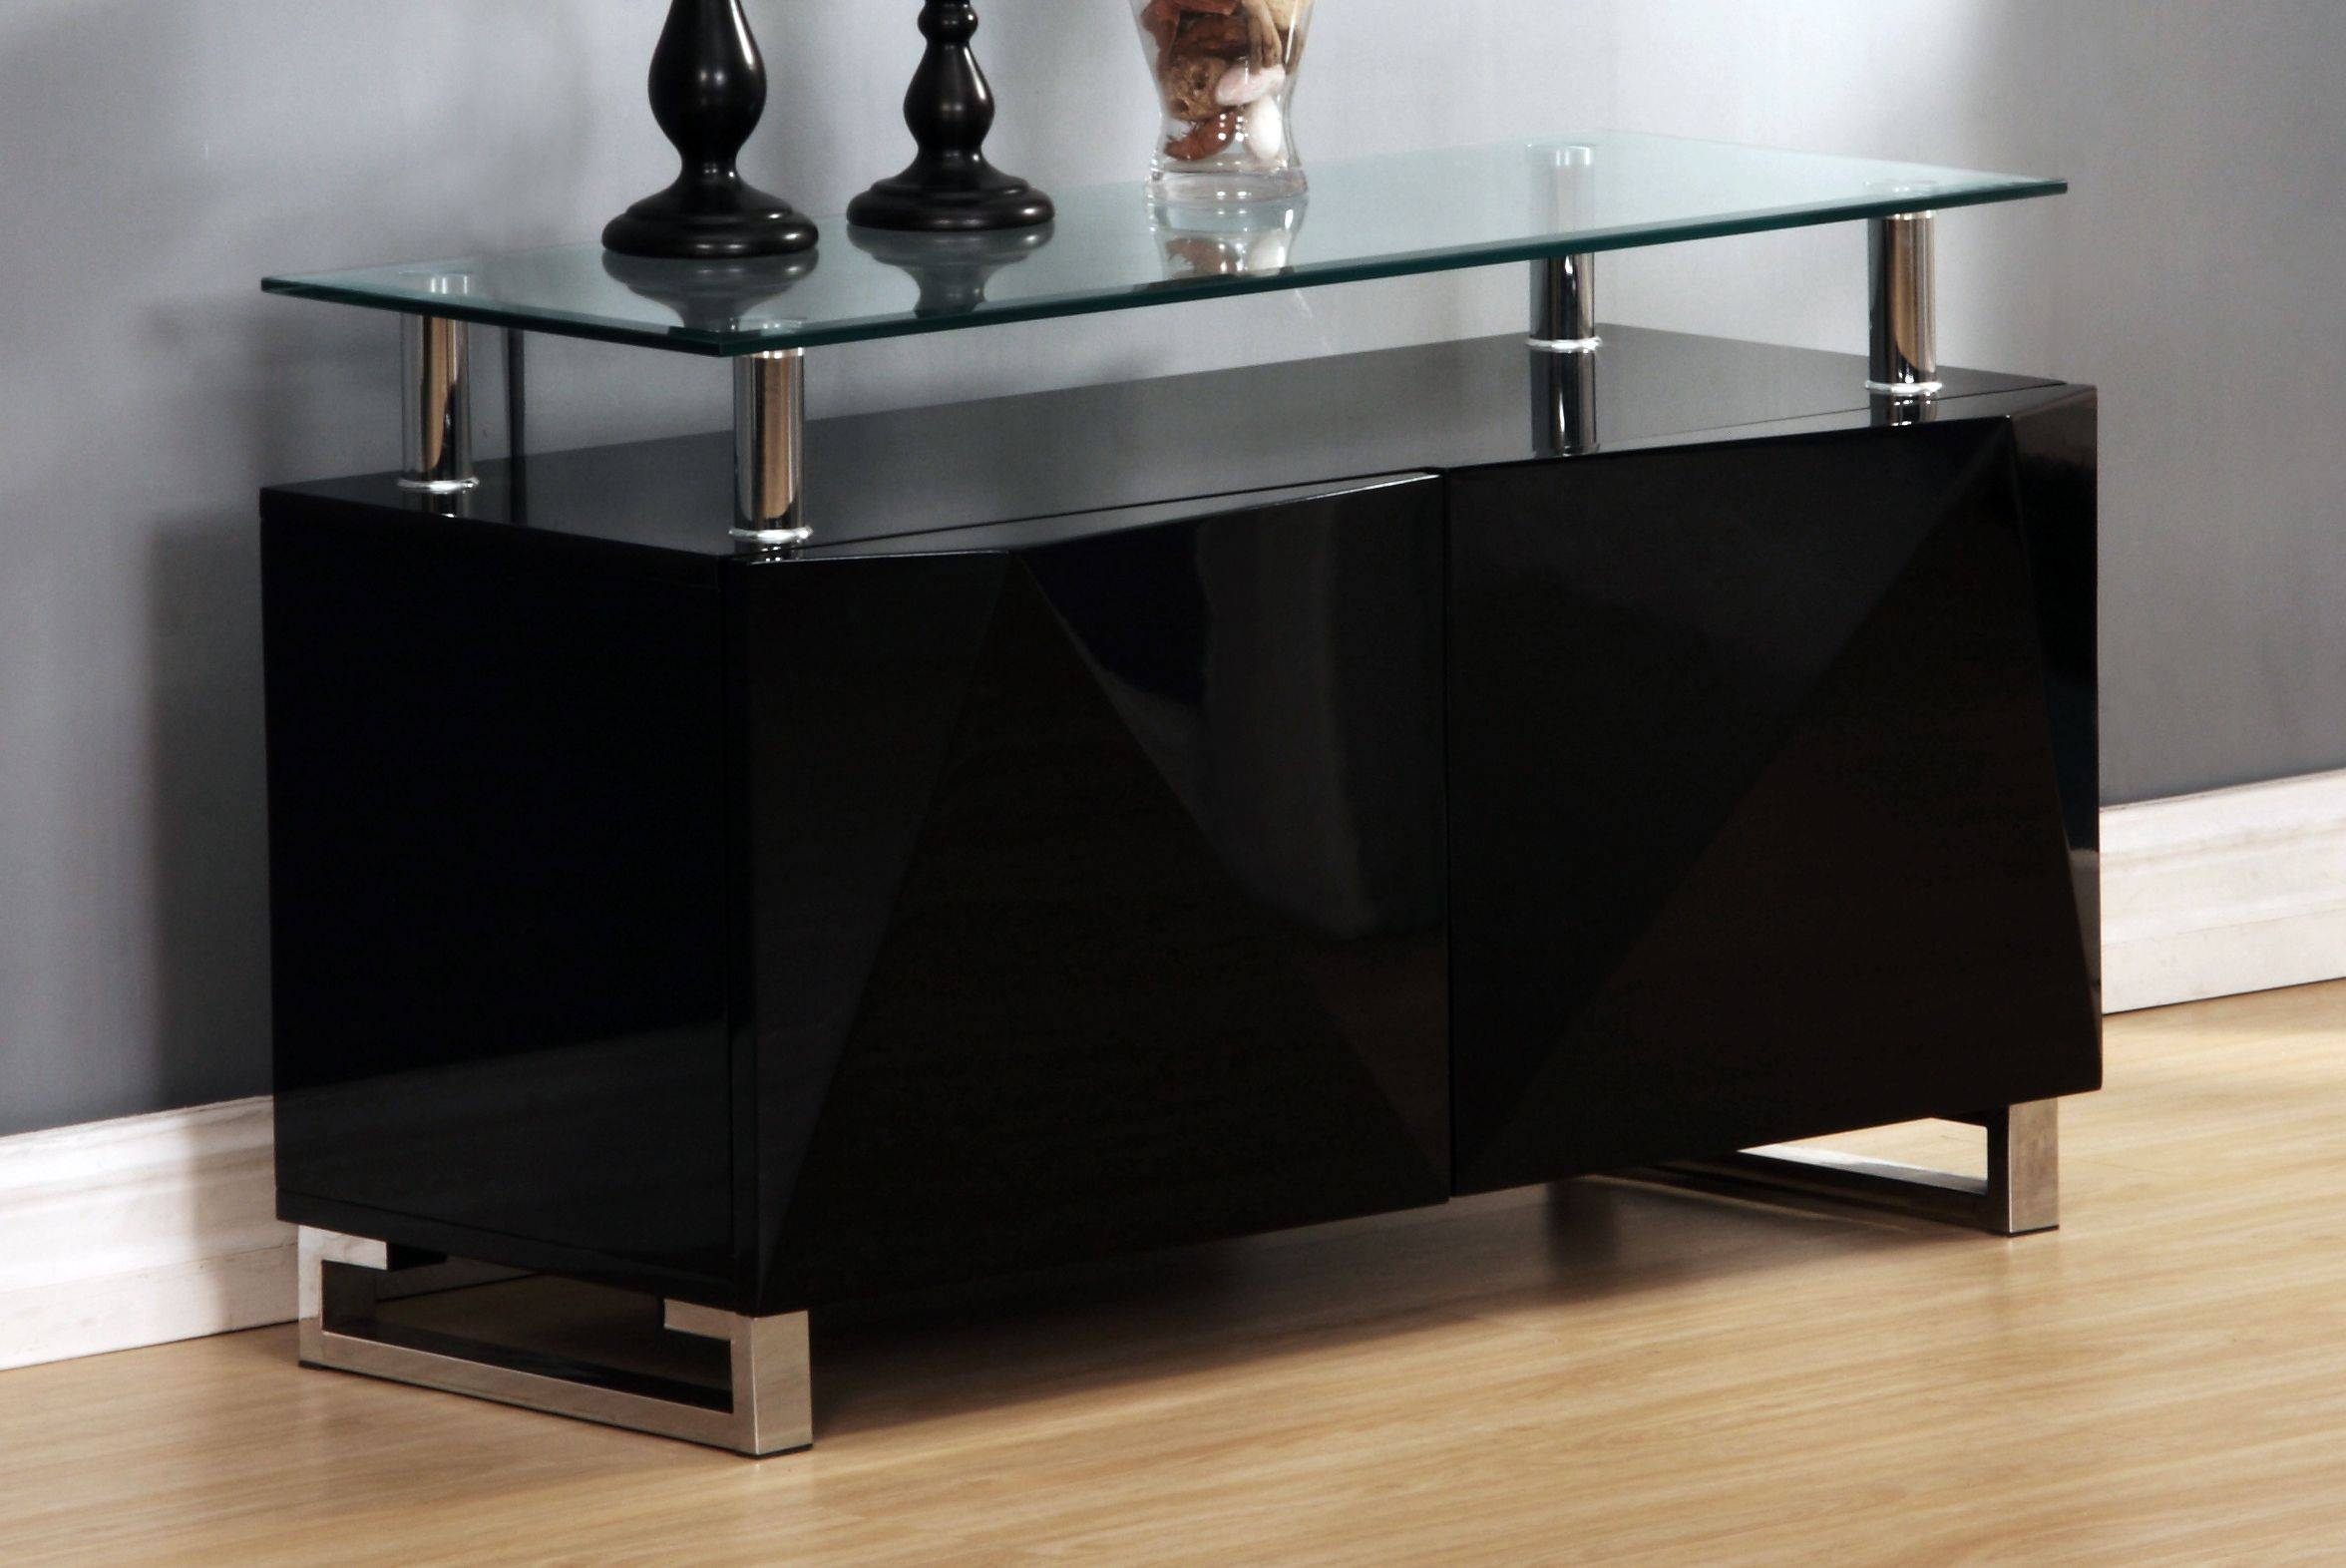 Best Rowley Small Gloss Designer Sideboard Black Or White In Small Black Sideboard (#4 of 20)